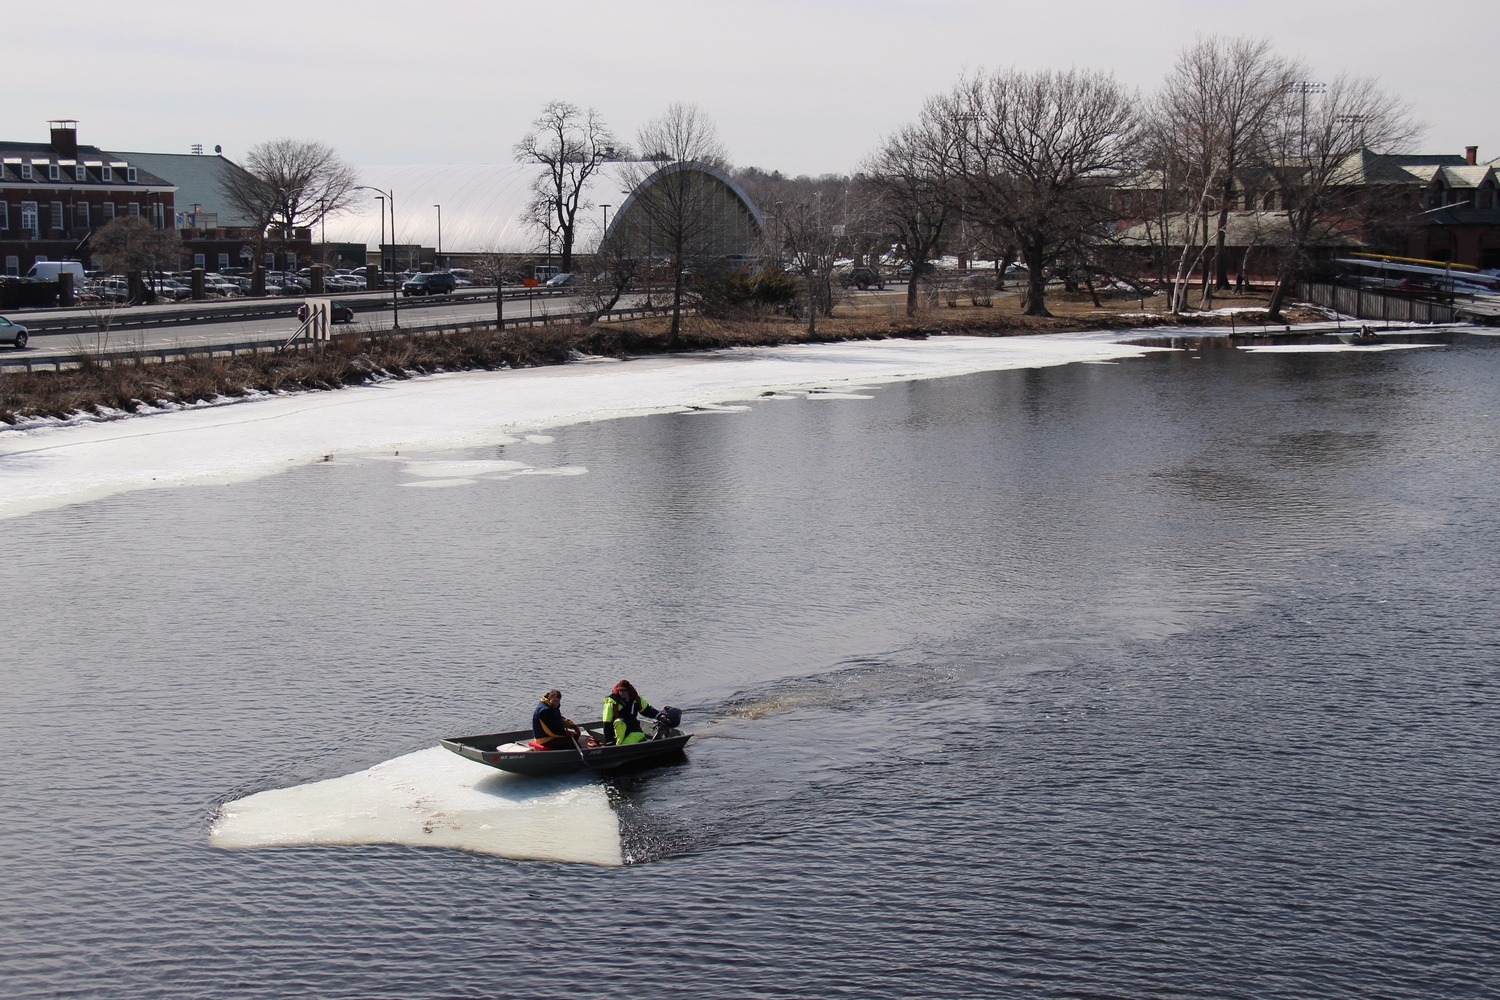 Coaches William Boyce and Hugo Gulliver clear residual ice from the Charles river Wednesday afternoon. The ice has limited dock access and rowing area in recent weeks, according to Lightweight Head Coach Michiel Bartman.